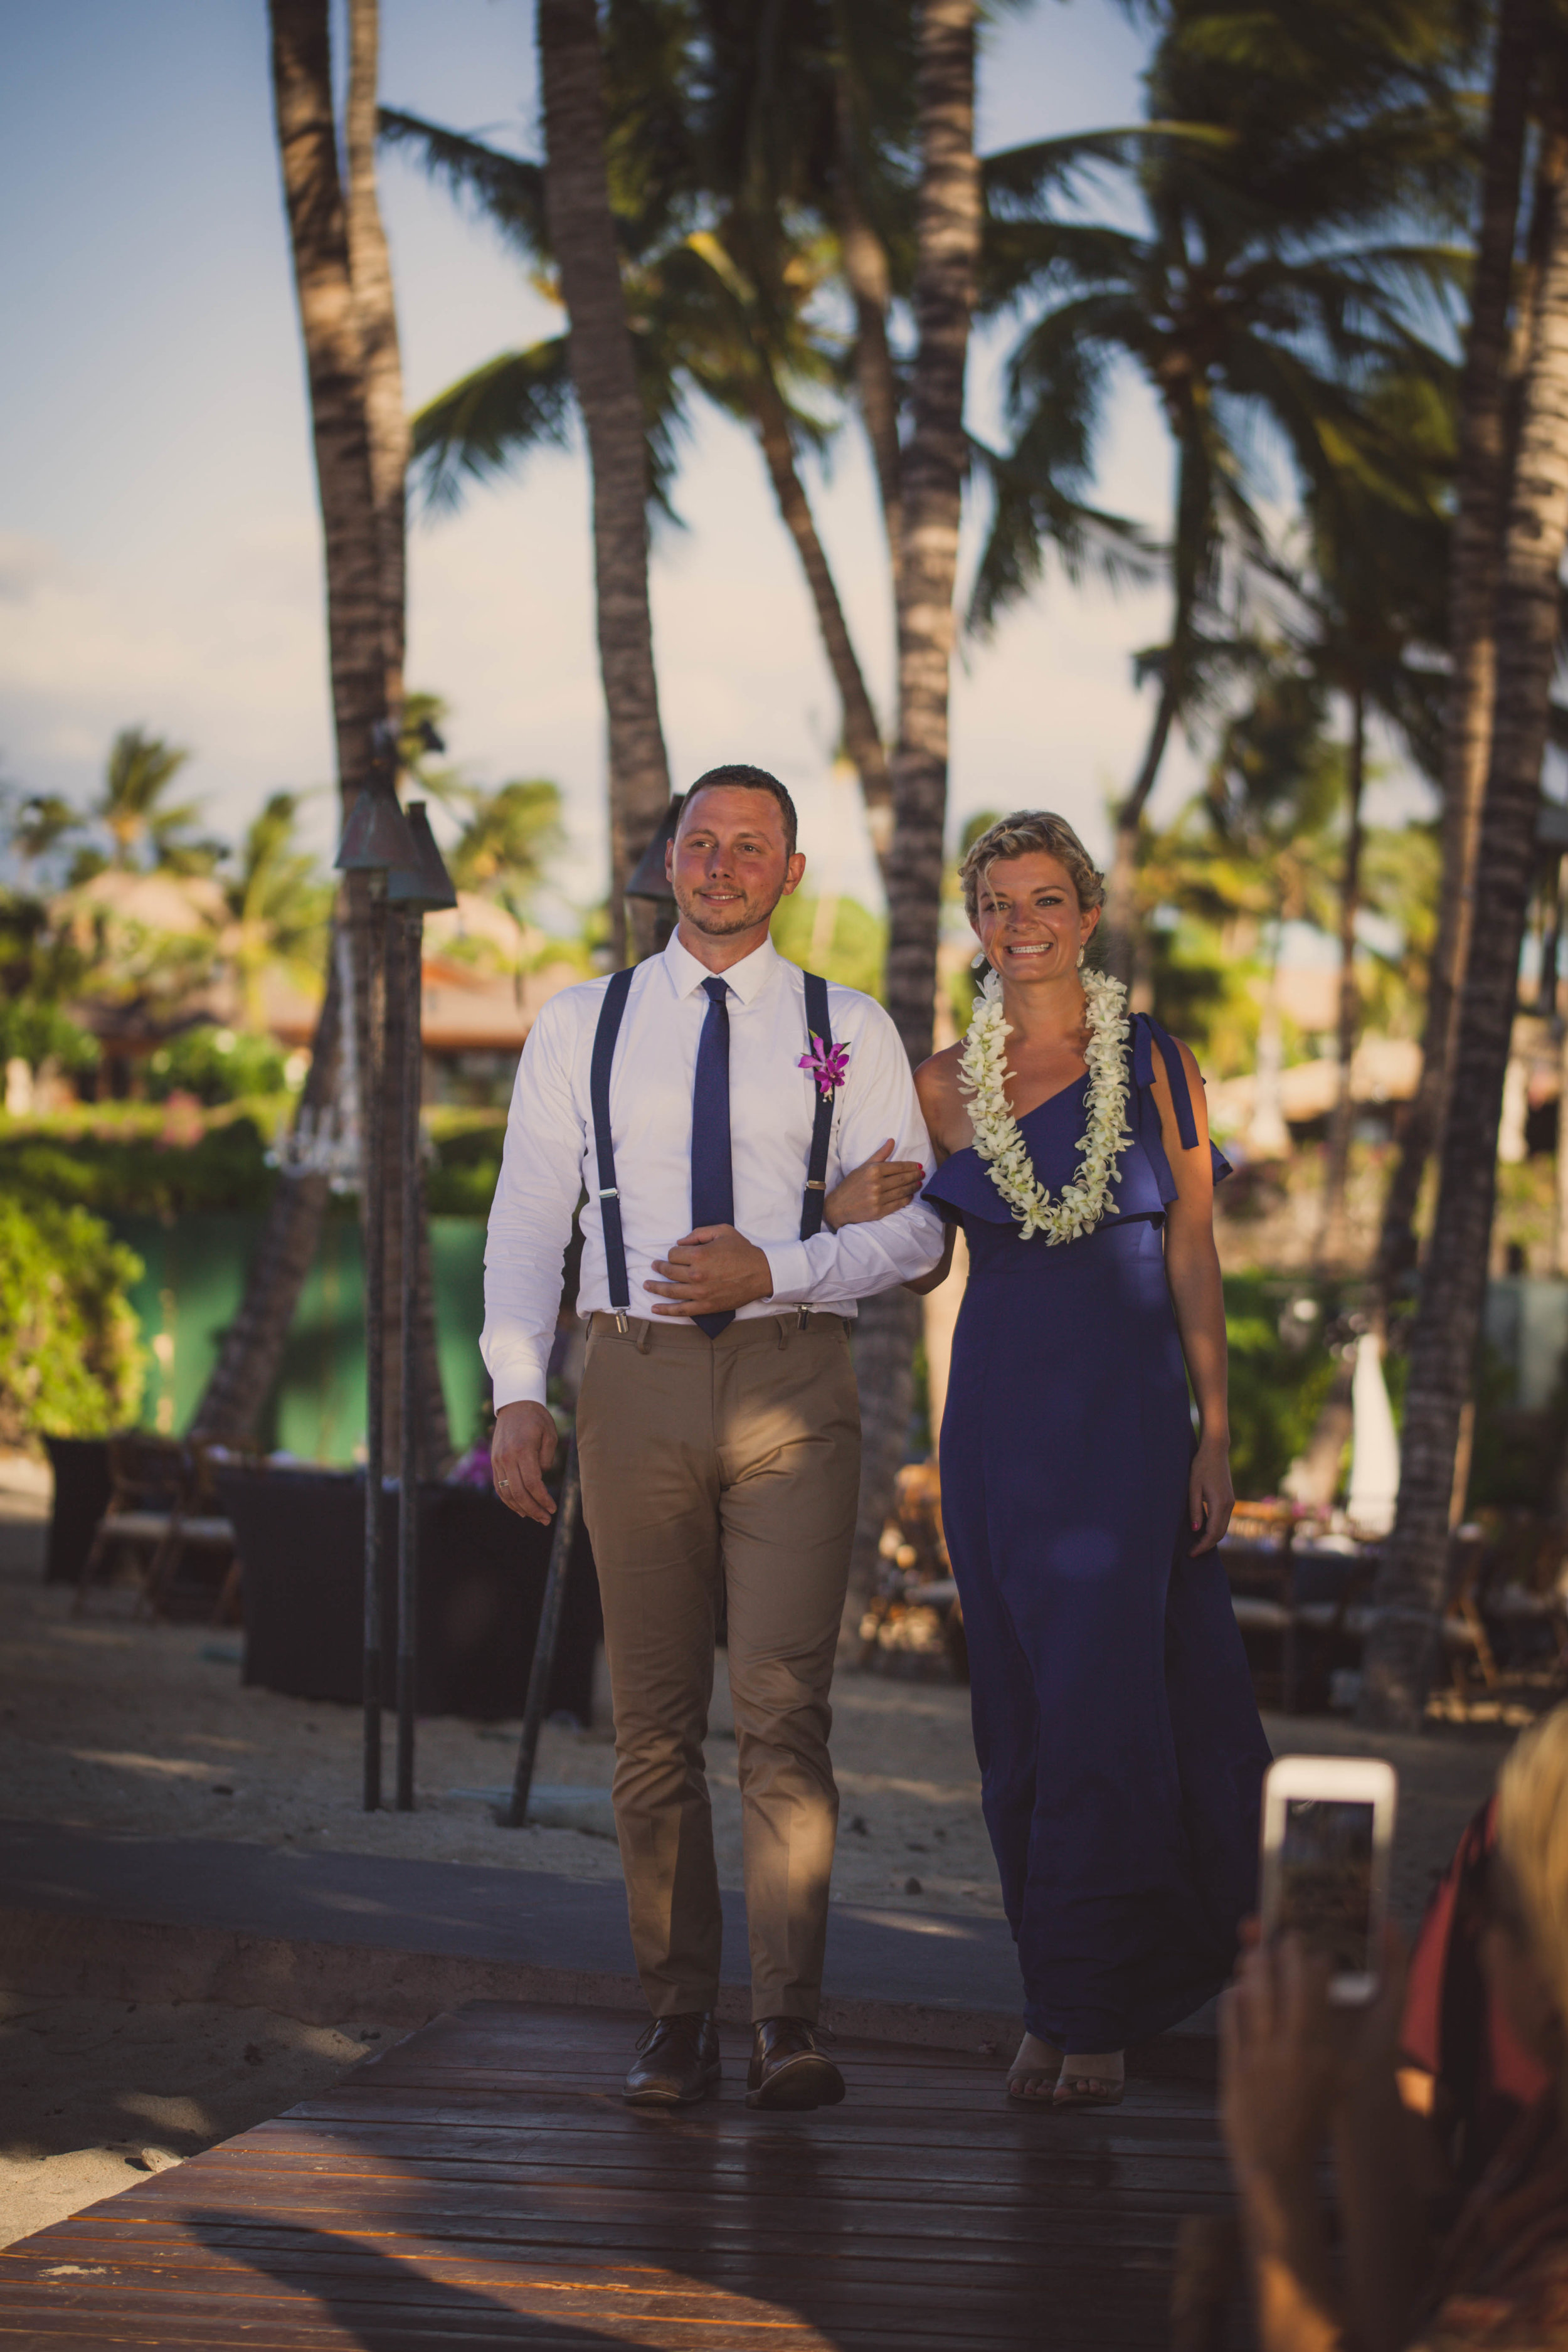 big island hawaii fairmont orchid beach wedding © kelilina photography 20170812173335-1.jpg